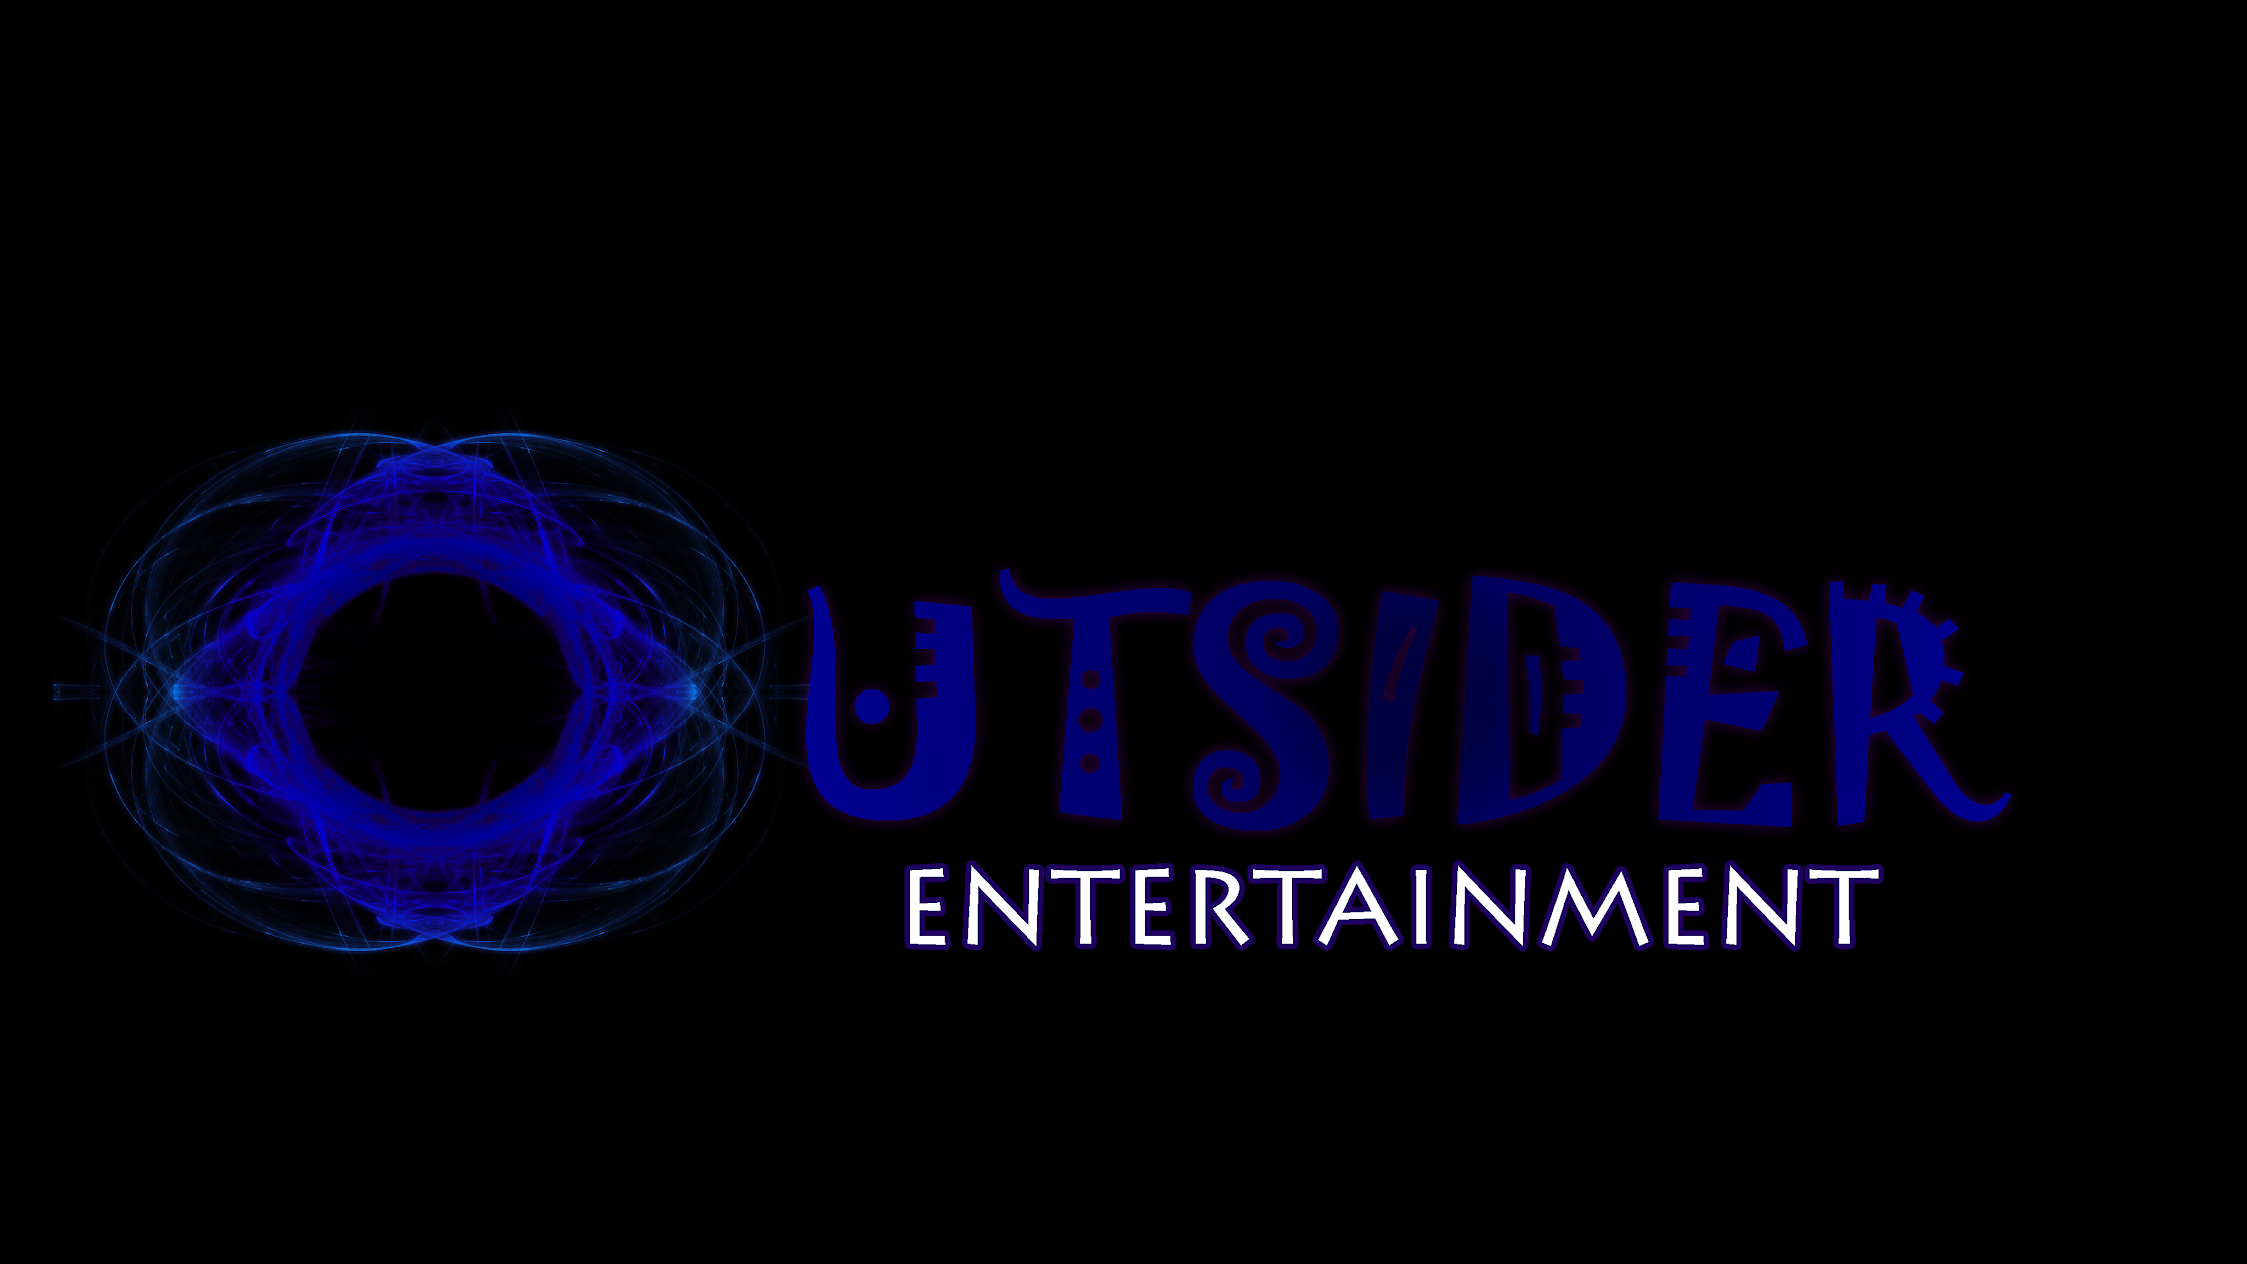 Outsider Entertainment